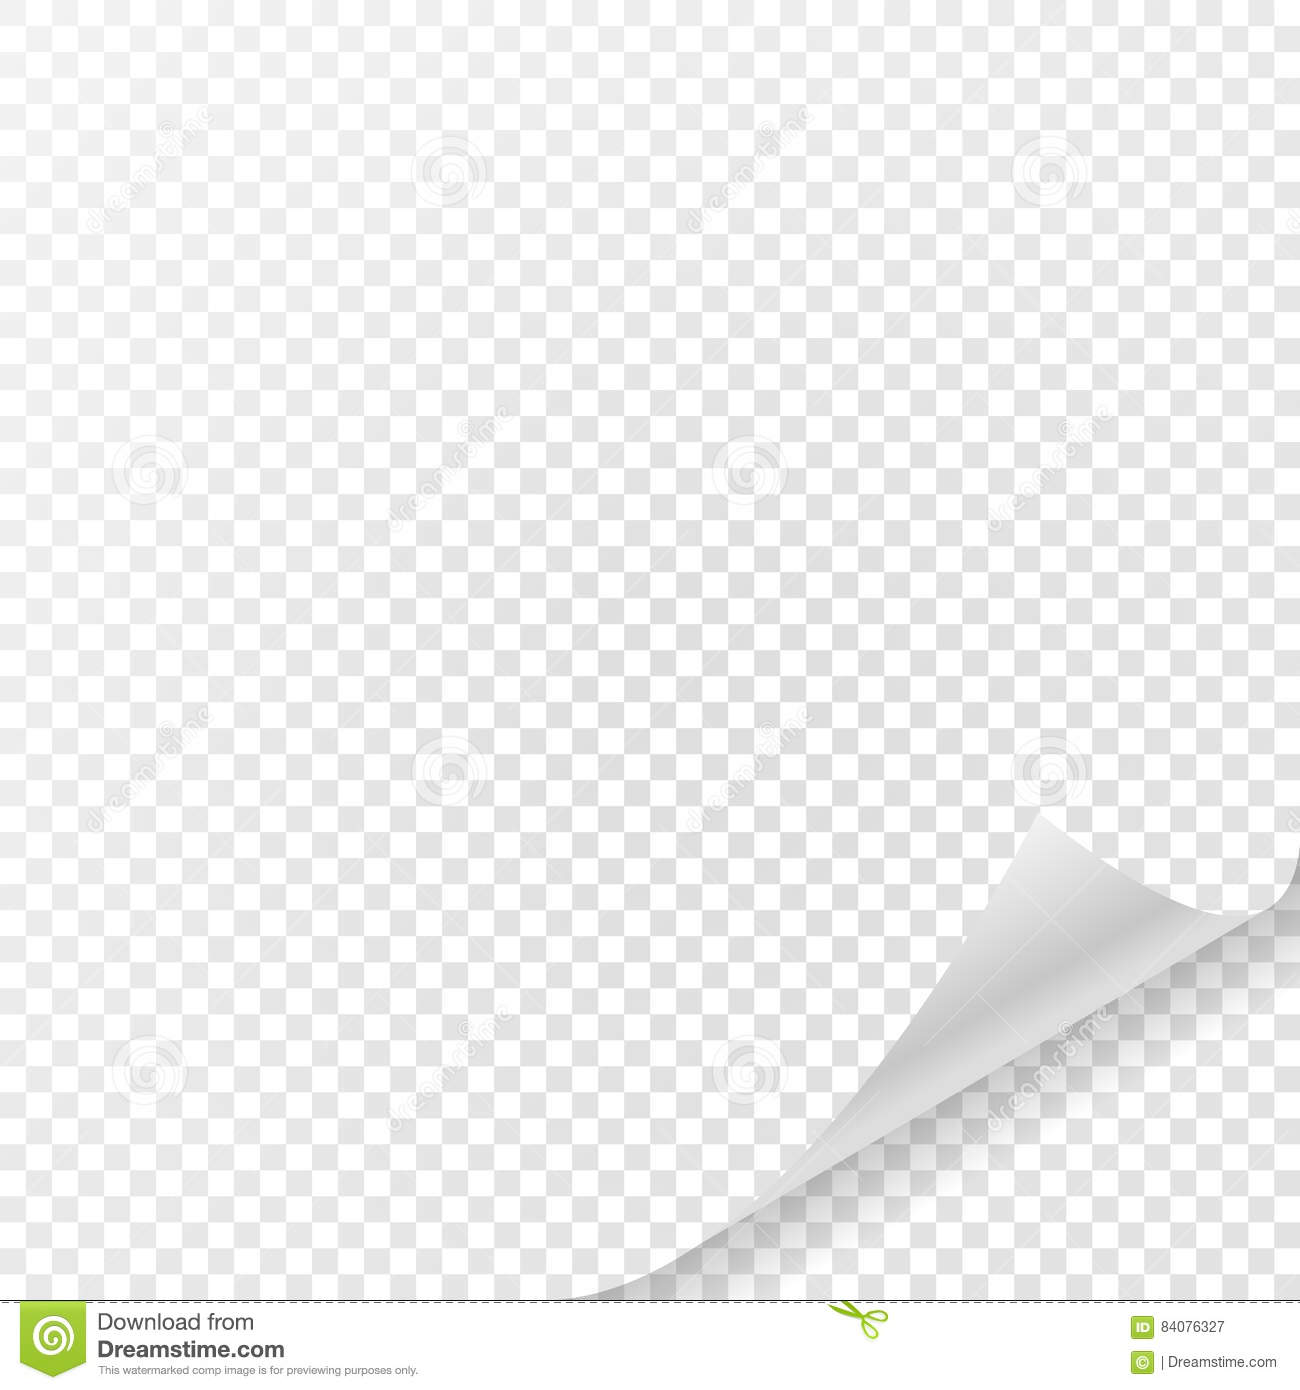 Background image transparency - White Sheet Of Paper With Curved Corner And With Shadow On Transparent Background Transparency Only In Format